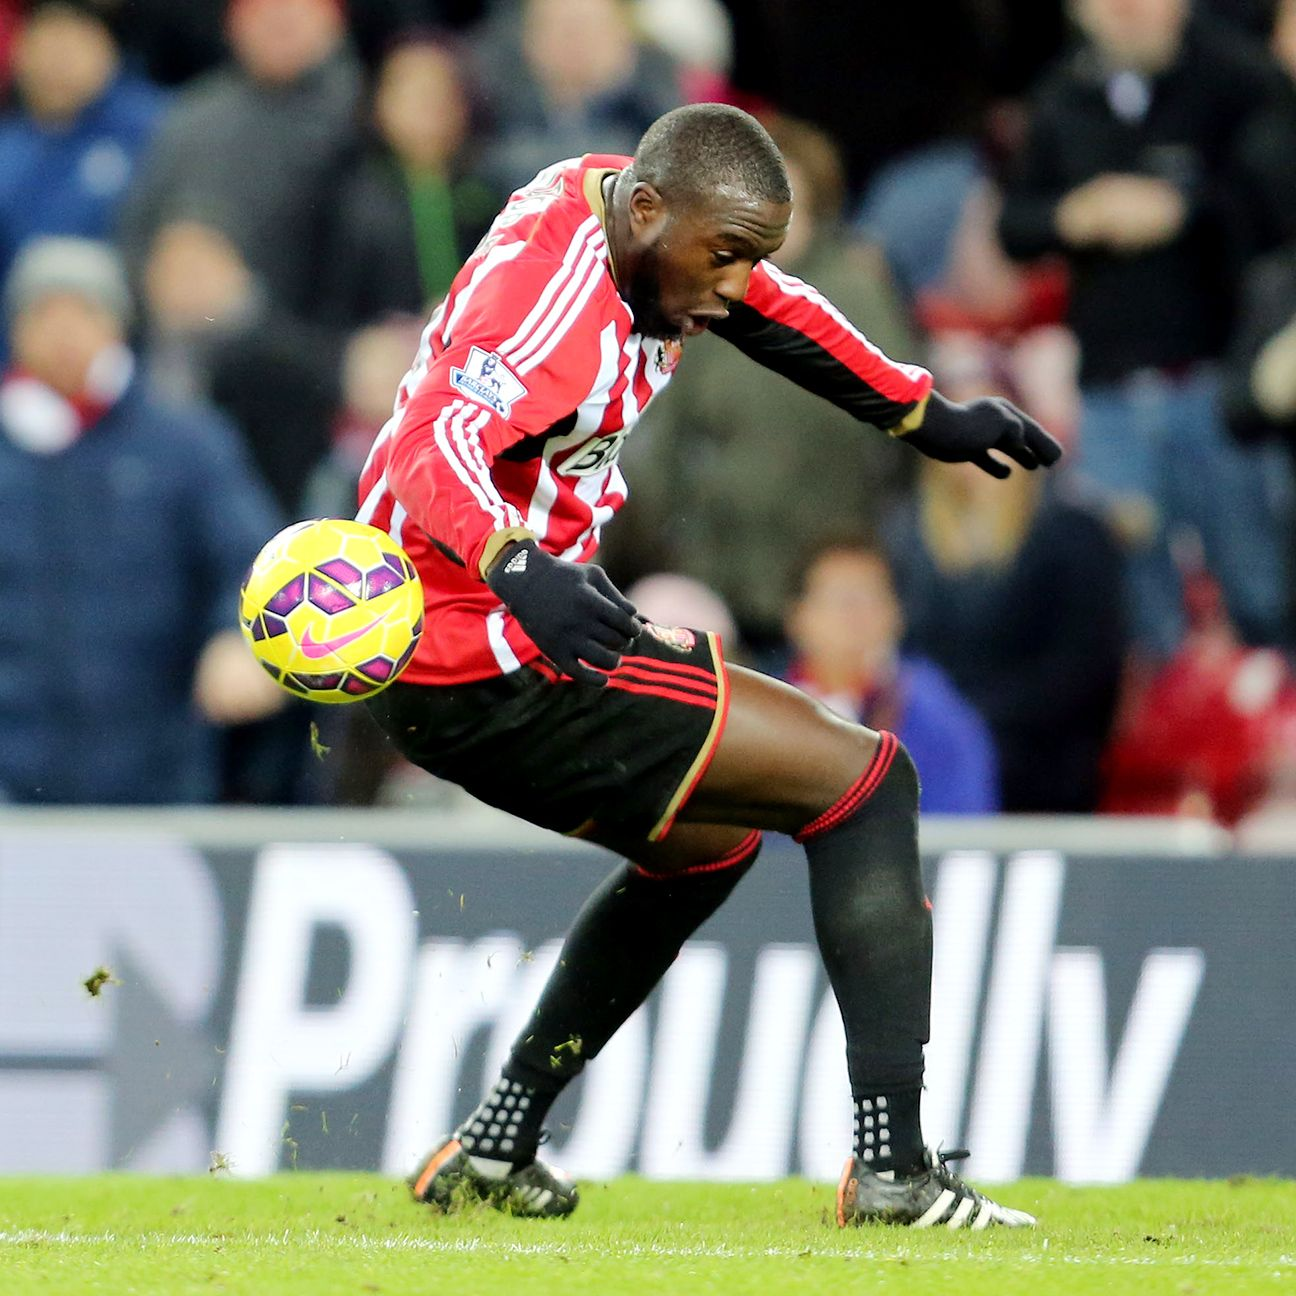 Jozy Altidore's goal drought continued after his horror miss on Saturday versus West Ham.